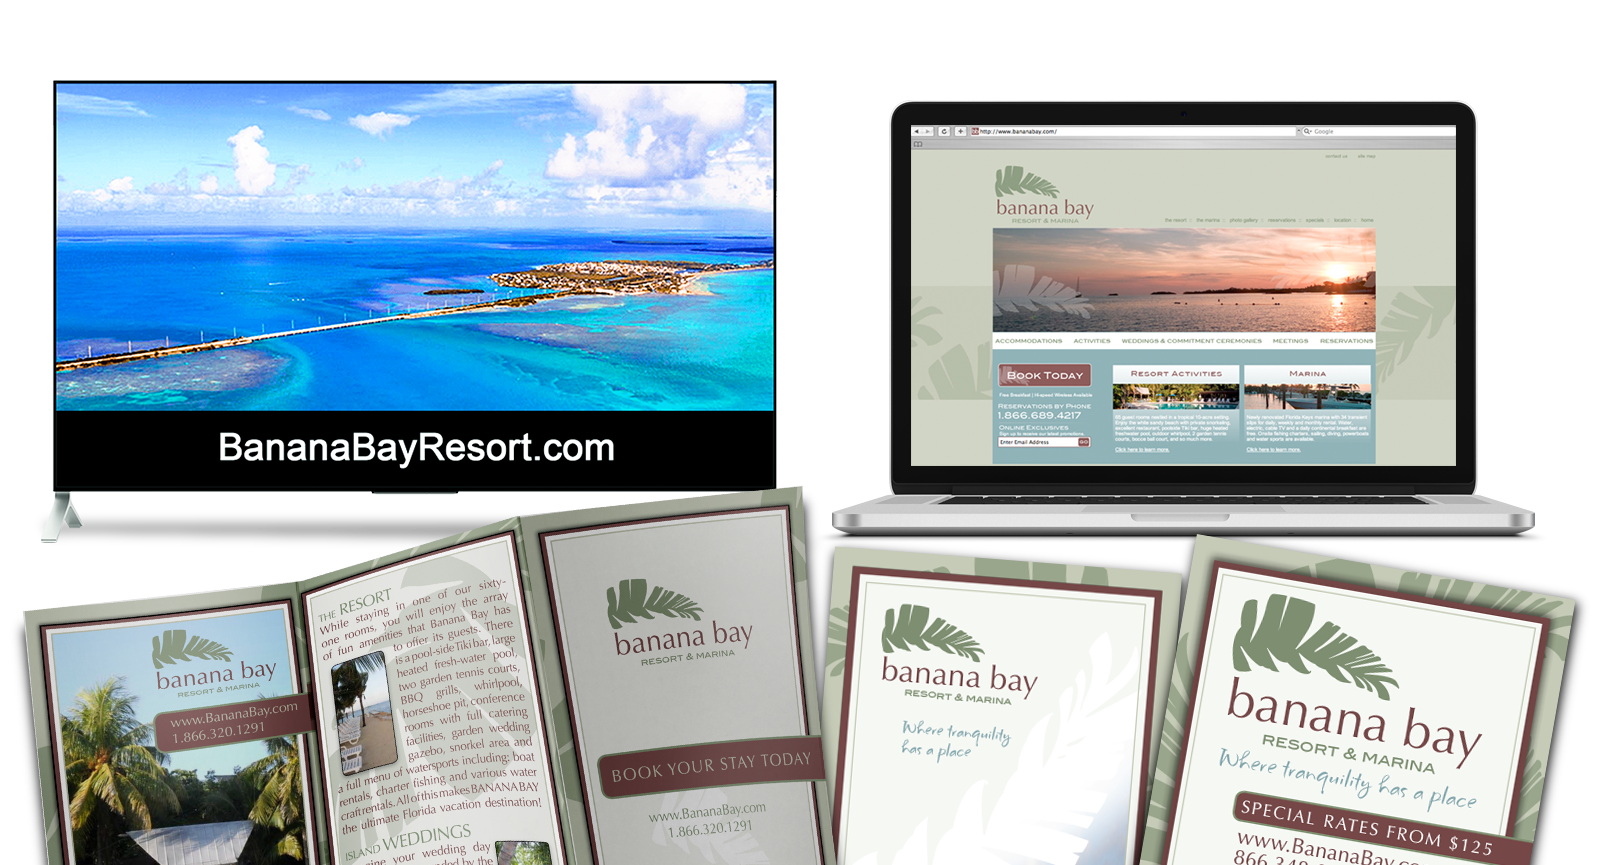 Hotel Marketing Agency | Banana Bay Resort & Marina